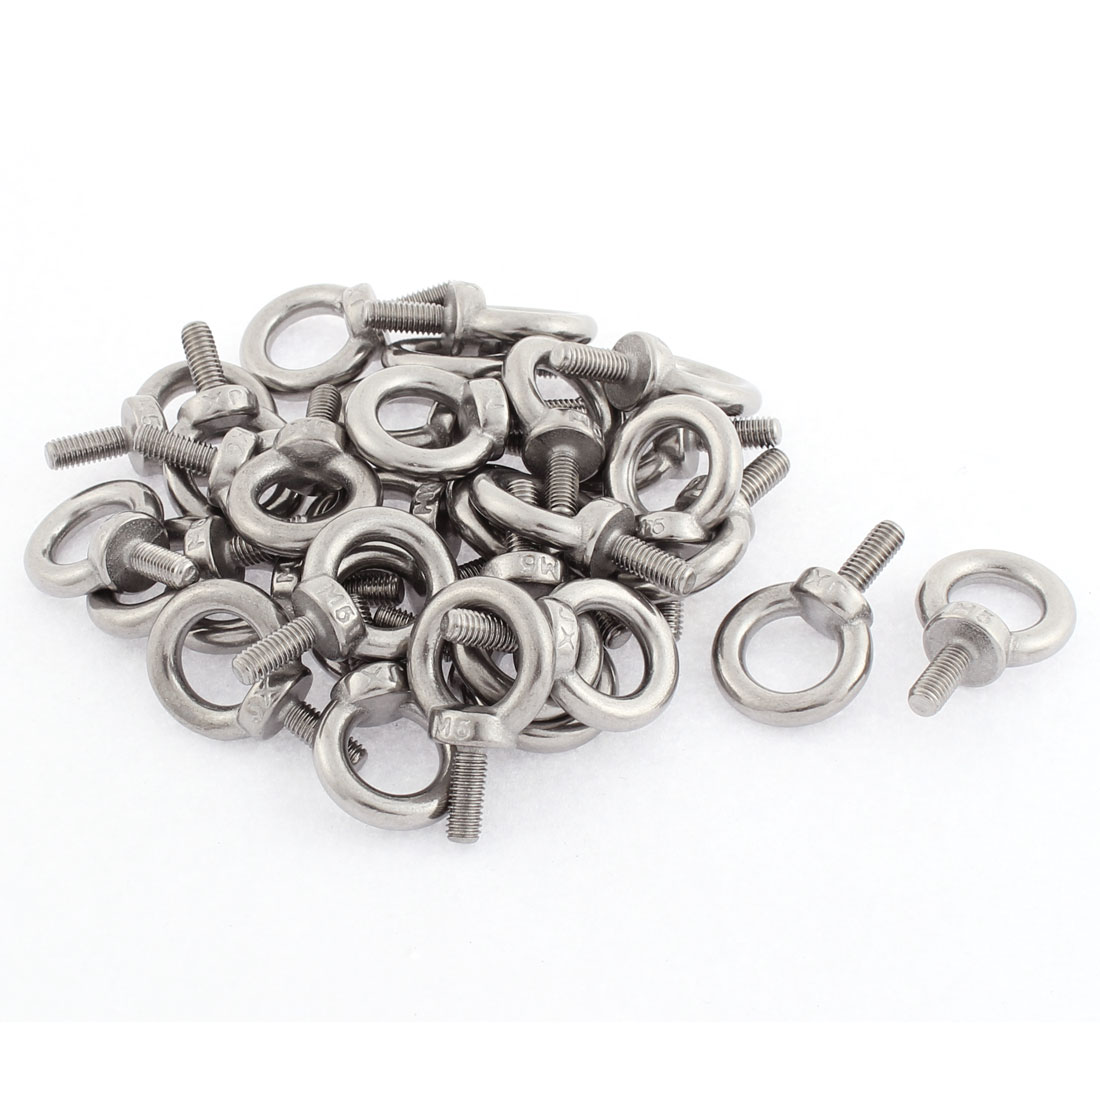 M5 x 12mm Male Thread Metal Machinery Shoulder Lifting Eye Bolt 30pcs